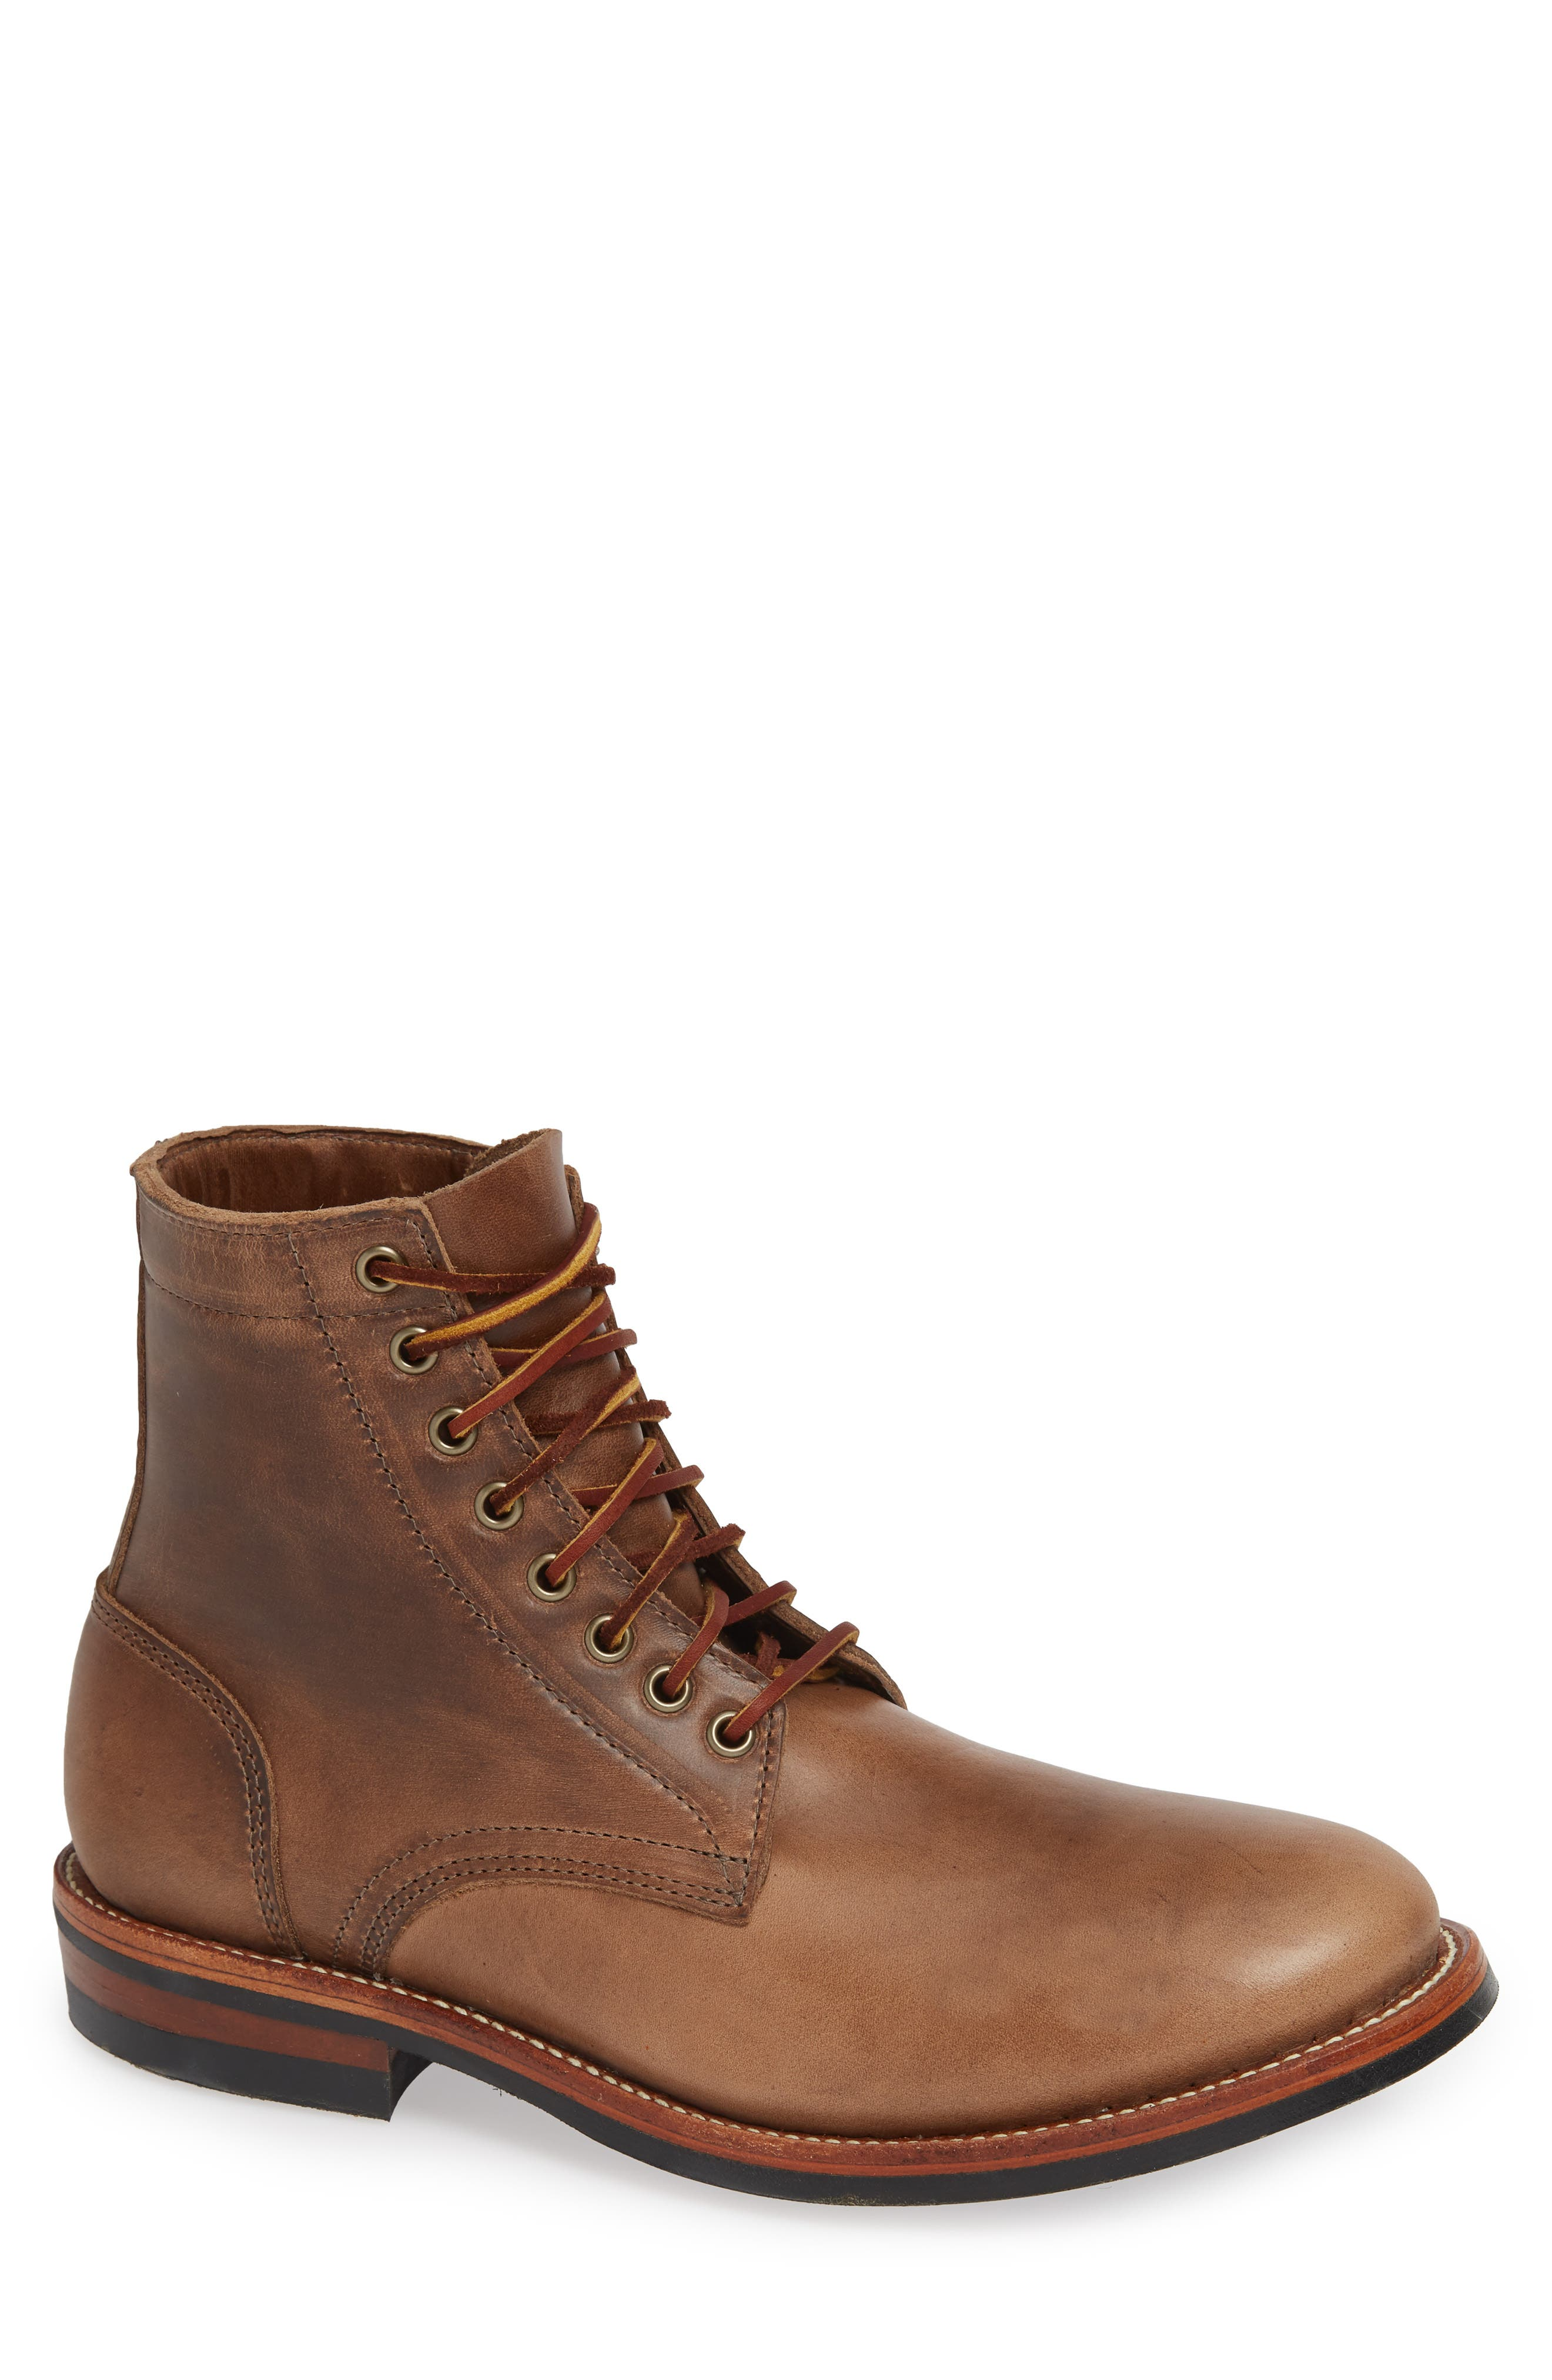 OAK STREET BOOTMAKERS Trench Plain Toe Boot in Natural Leather